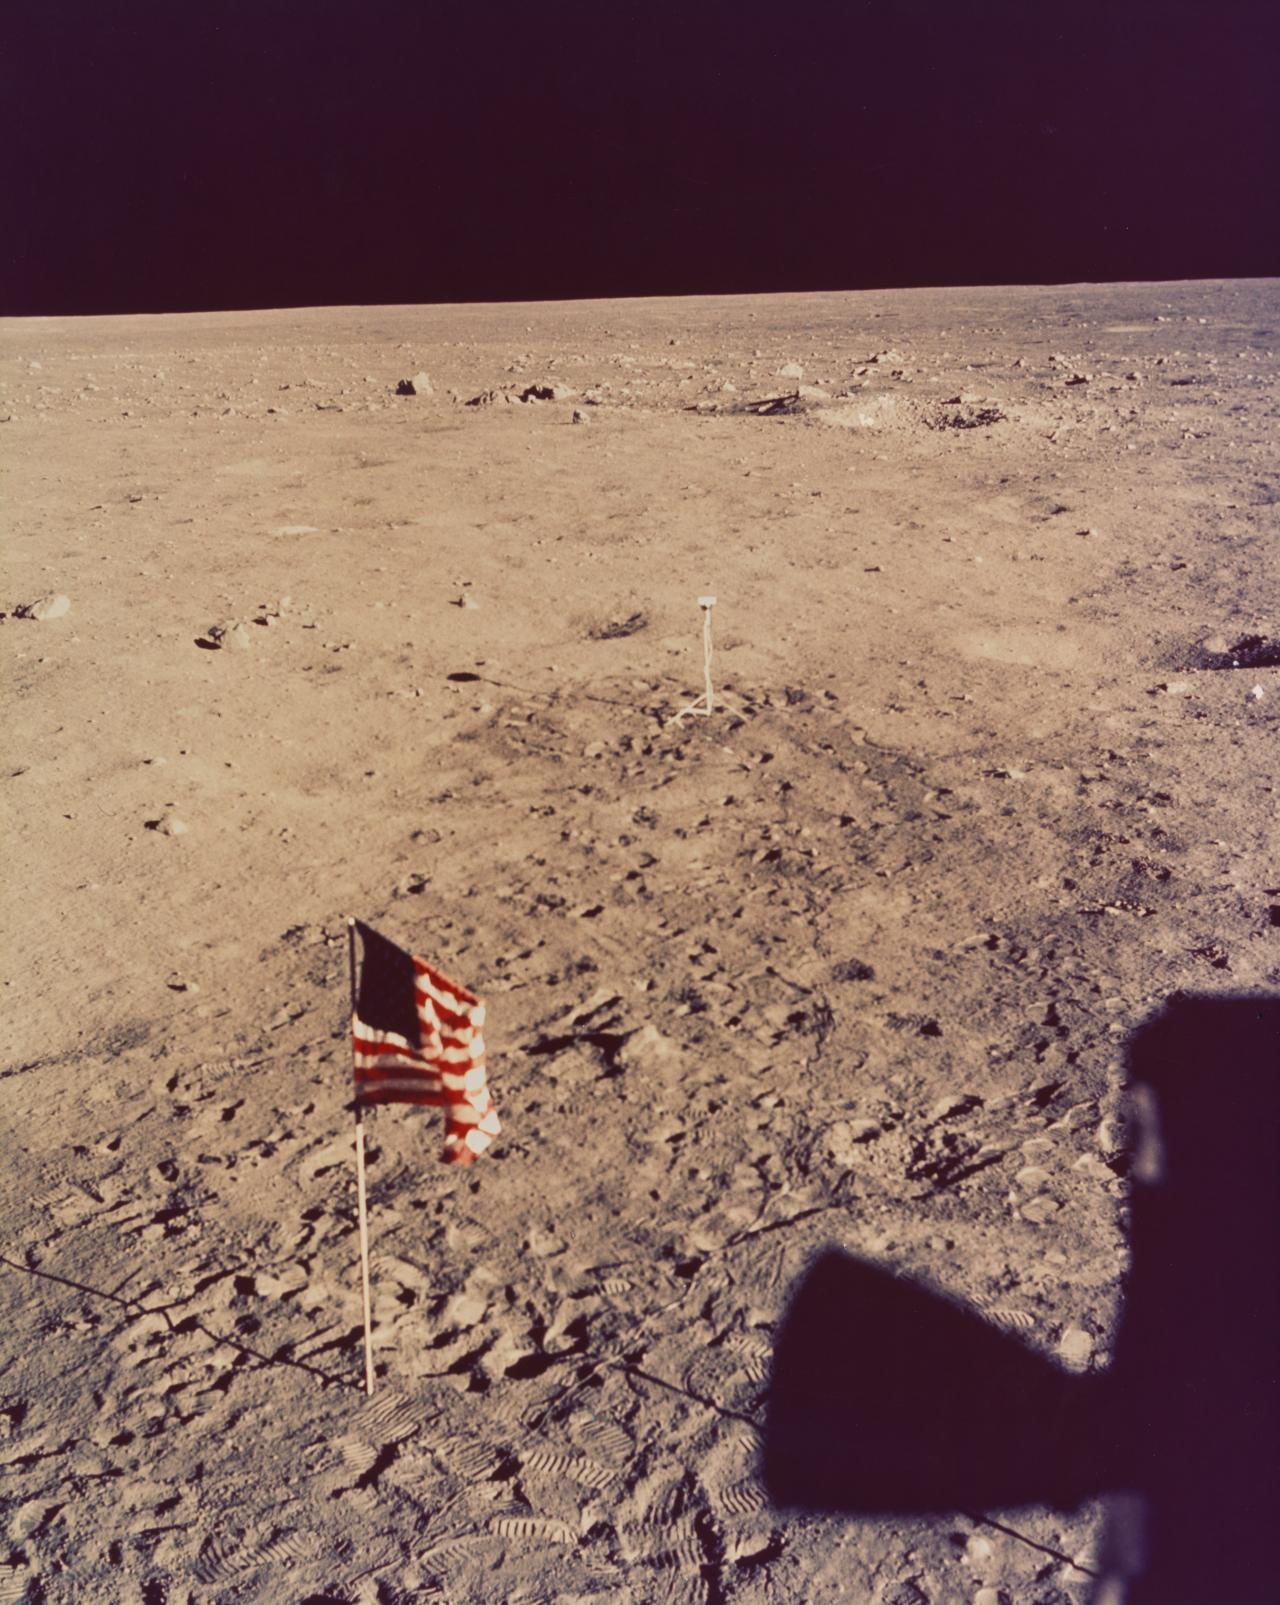 United States flag on moon surface with lunar surface television camera in background